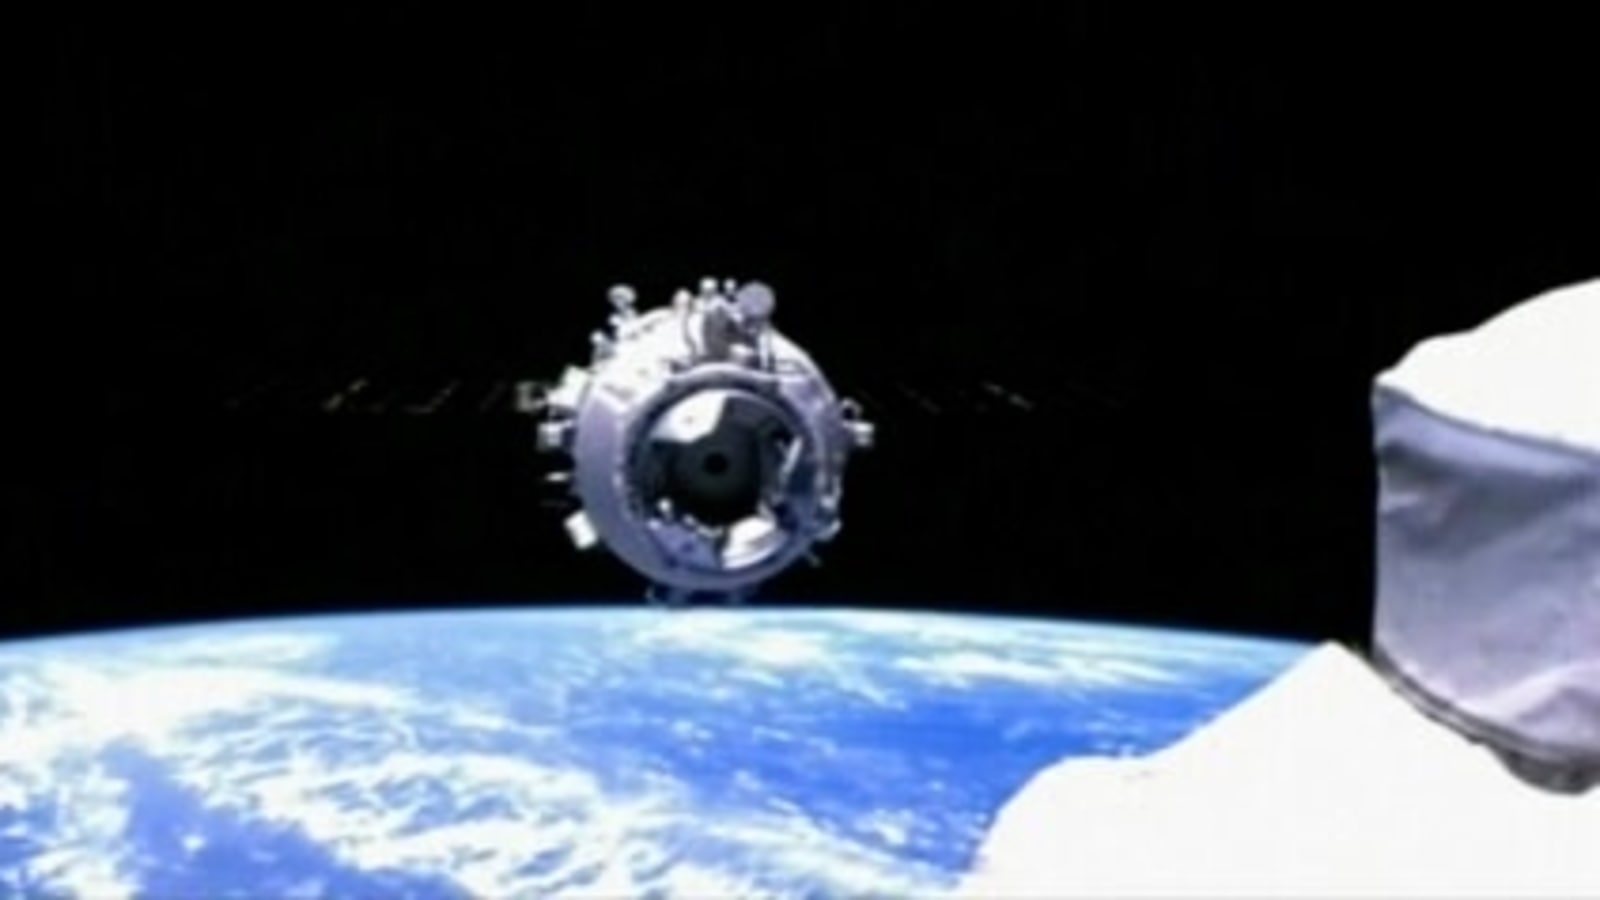 Chinese crewed spaceship Shenzhou-12 docks with new space station module Tianhe